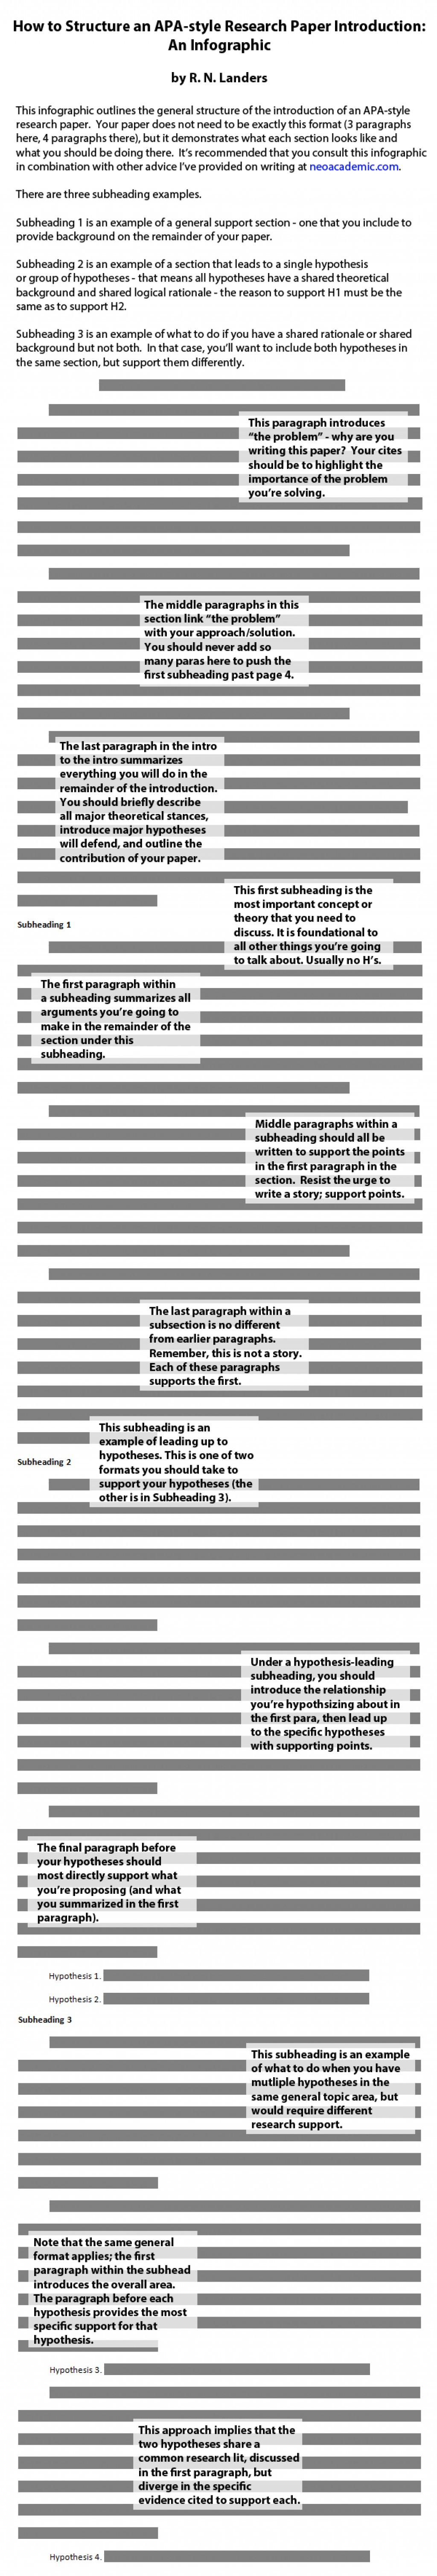 007 Intro Infographic2 Research Paper Writingn Introduction To Top Writing An A The Scientific Middle School Paragraph For Large